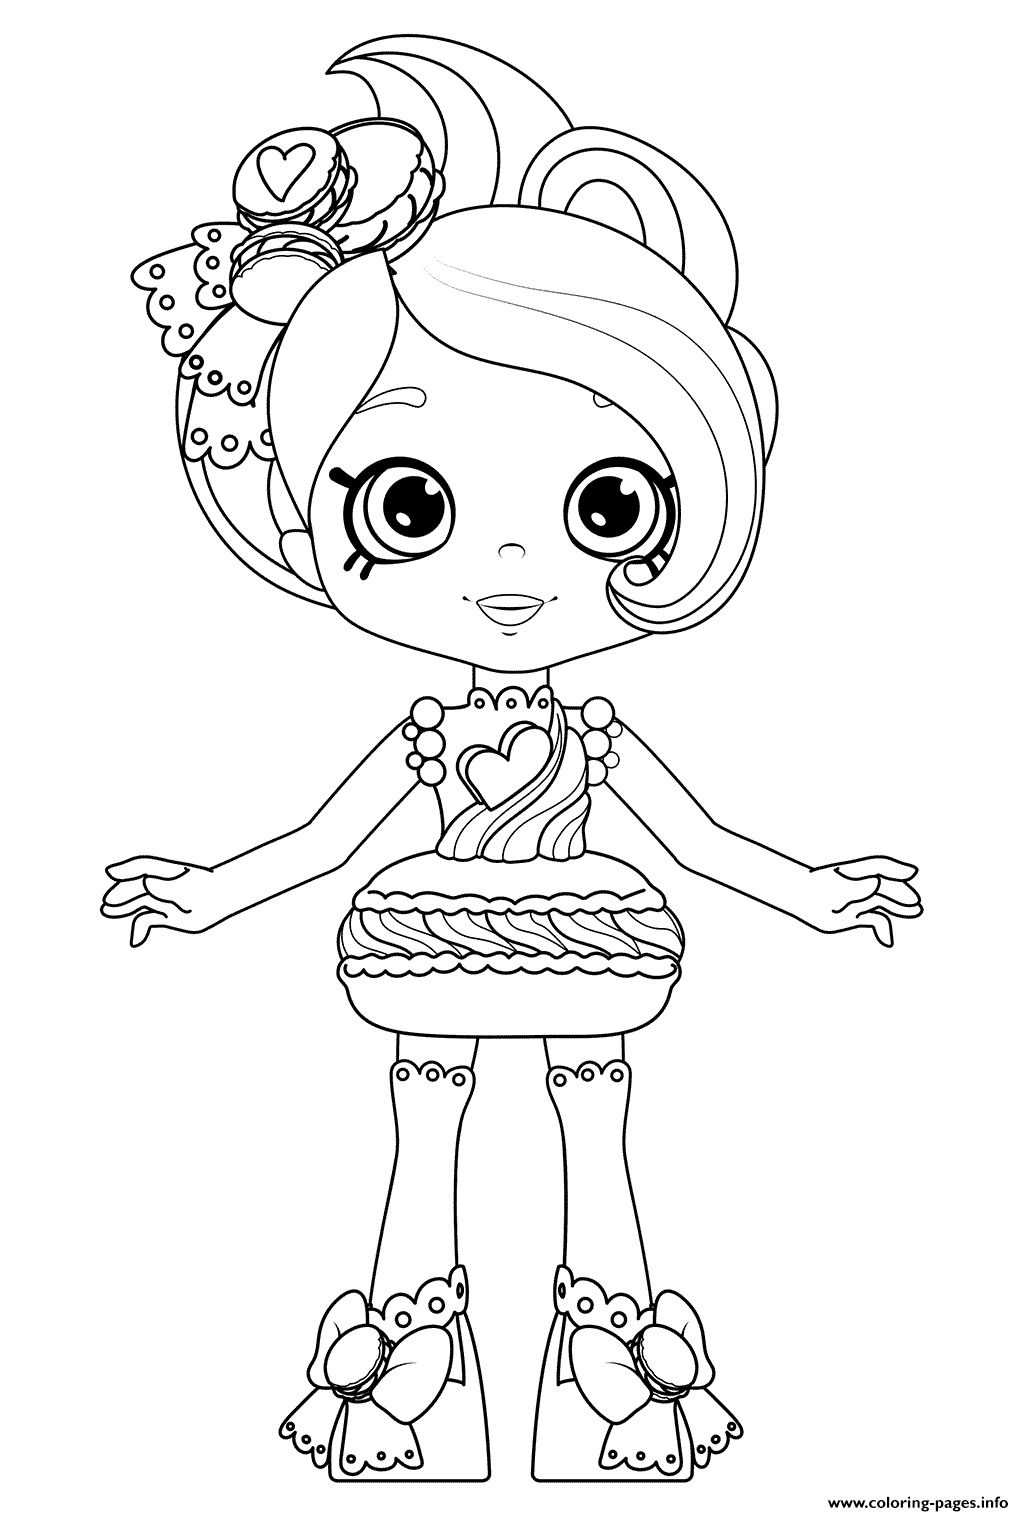 Macy Macaron From Happy Places Kitty Kitchen Print And Color Coloring Pages Printable